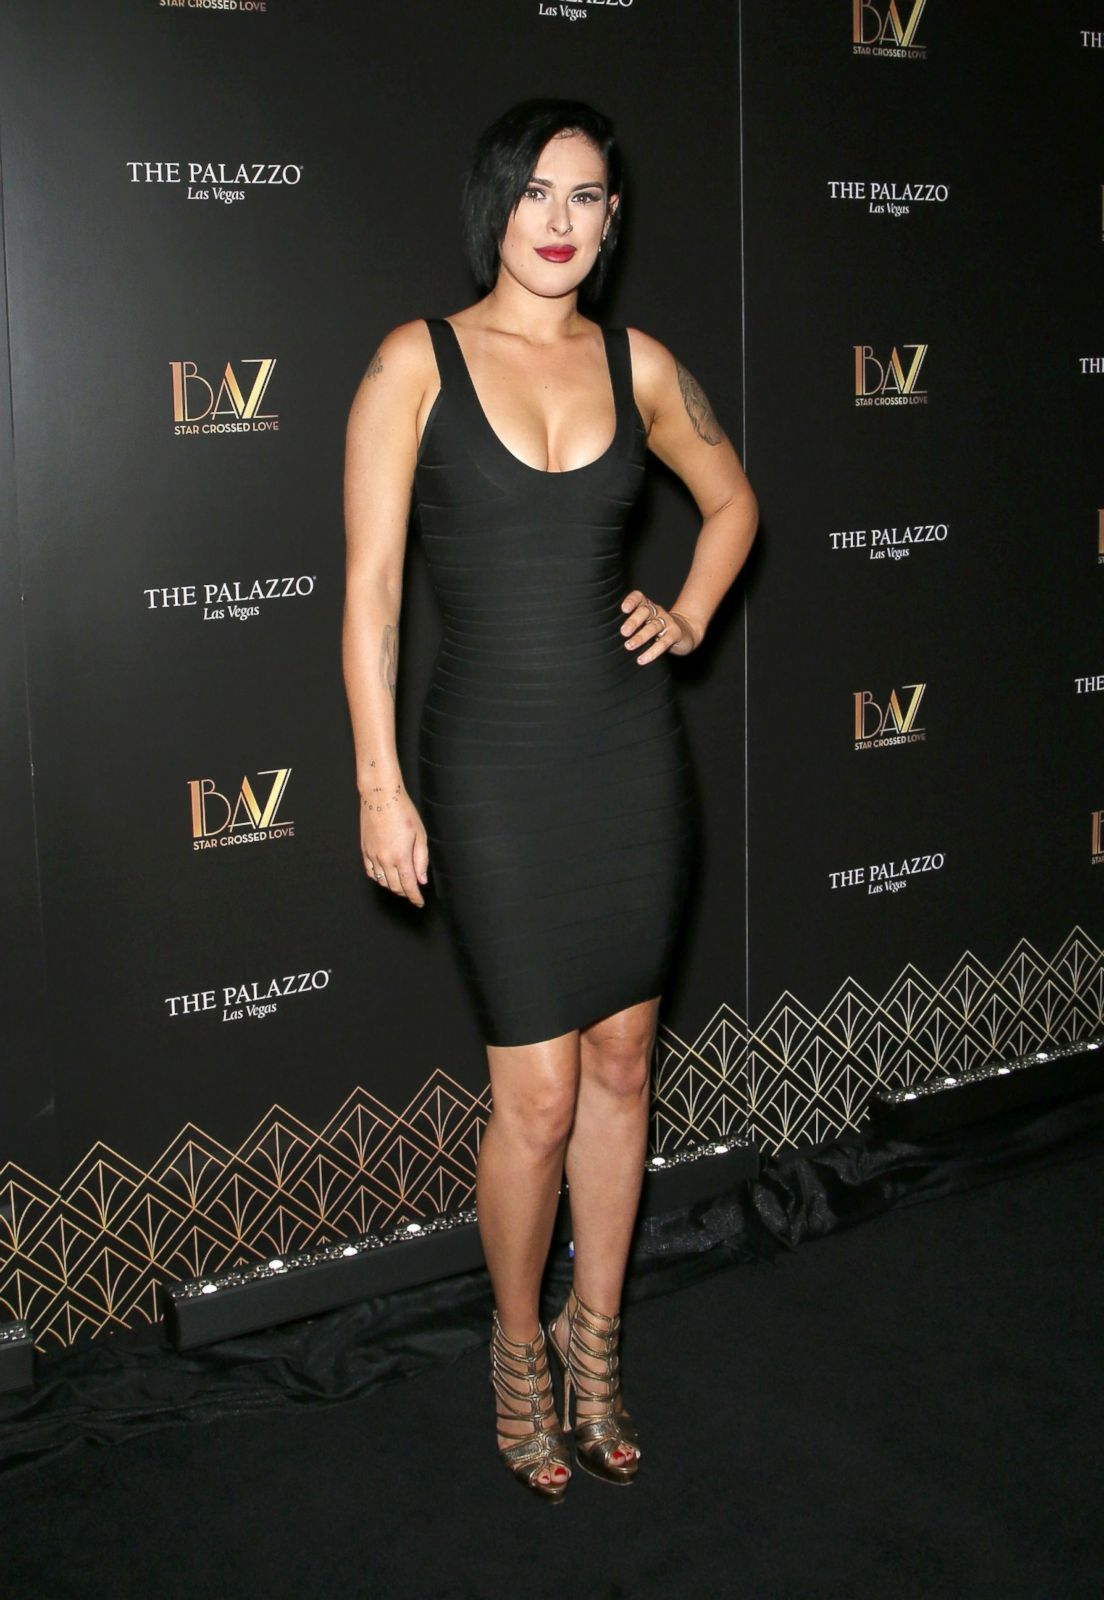 Debra Messing Braless Amazing debra messing hits the red carpet jumpsuit picture   july's top